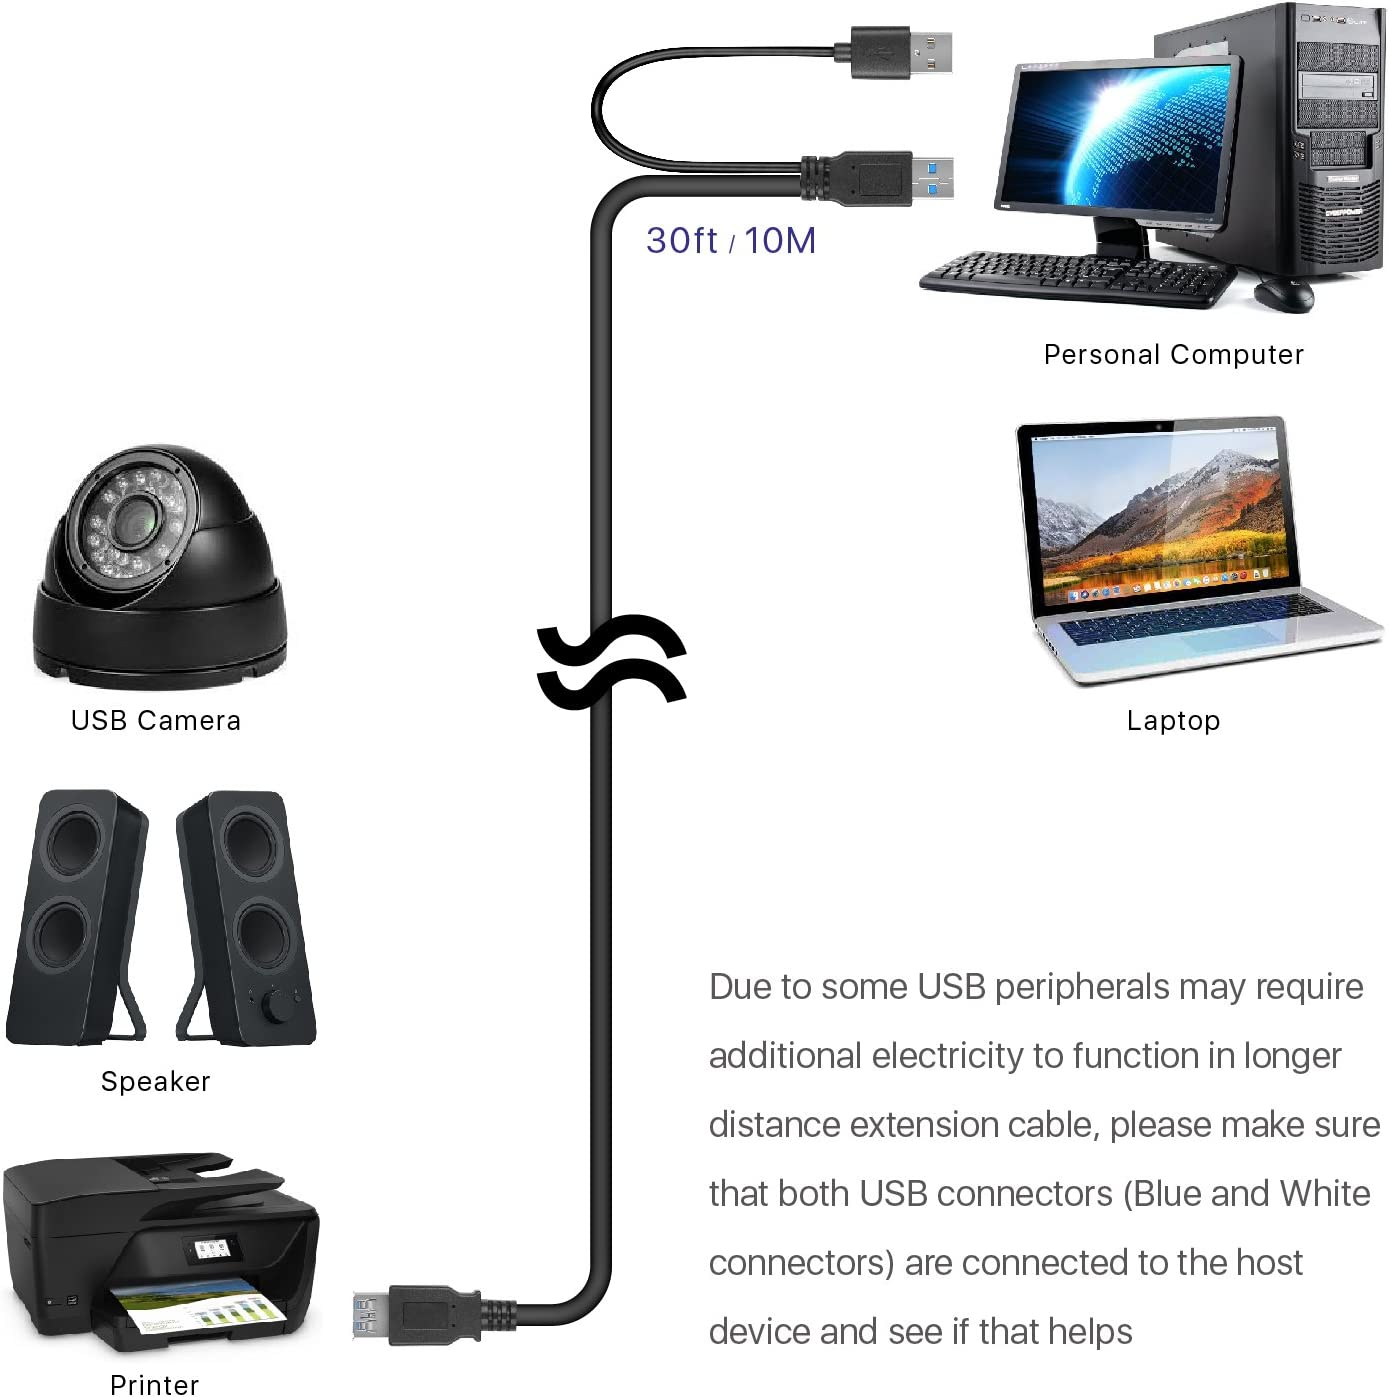 Mouse SuperSpeed USB 3.0 Active Extender Cord Repeater Booster Type A Male to A Female for External Hard Drive Mac Windows USB Hub TNP USB Extension Cable 30 ft Scanner VR Keyboard Printer